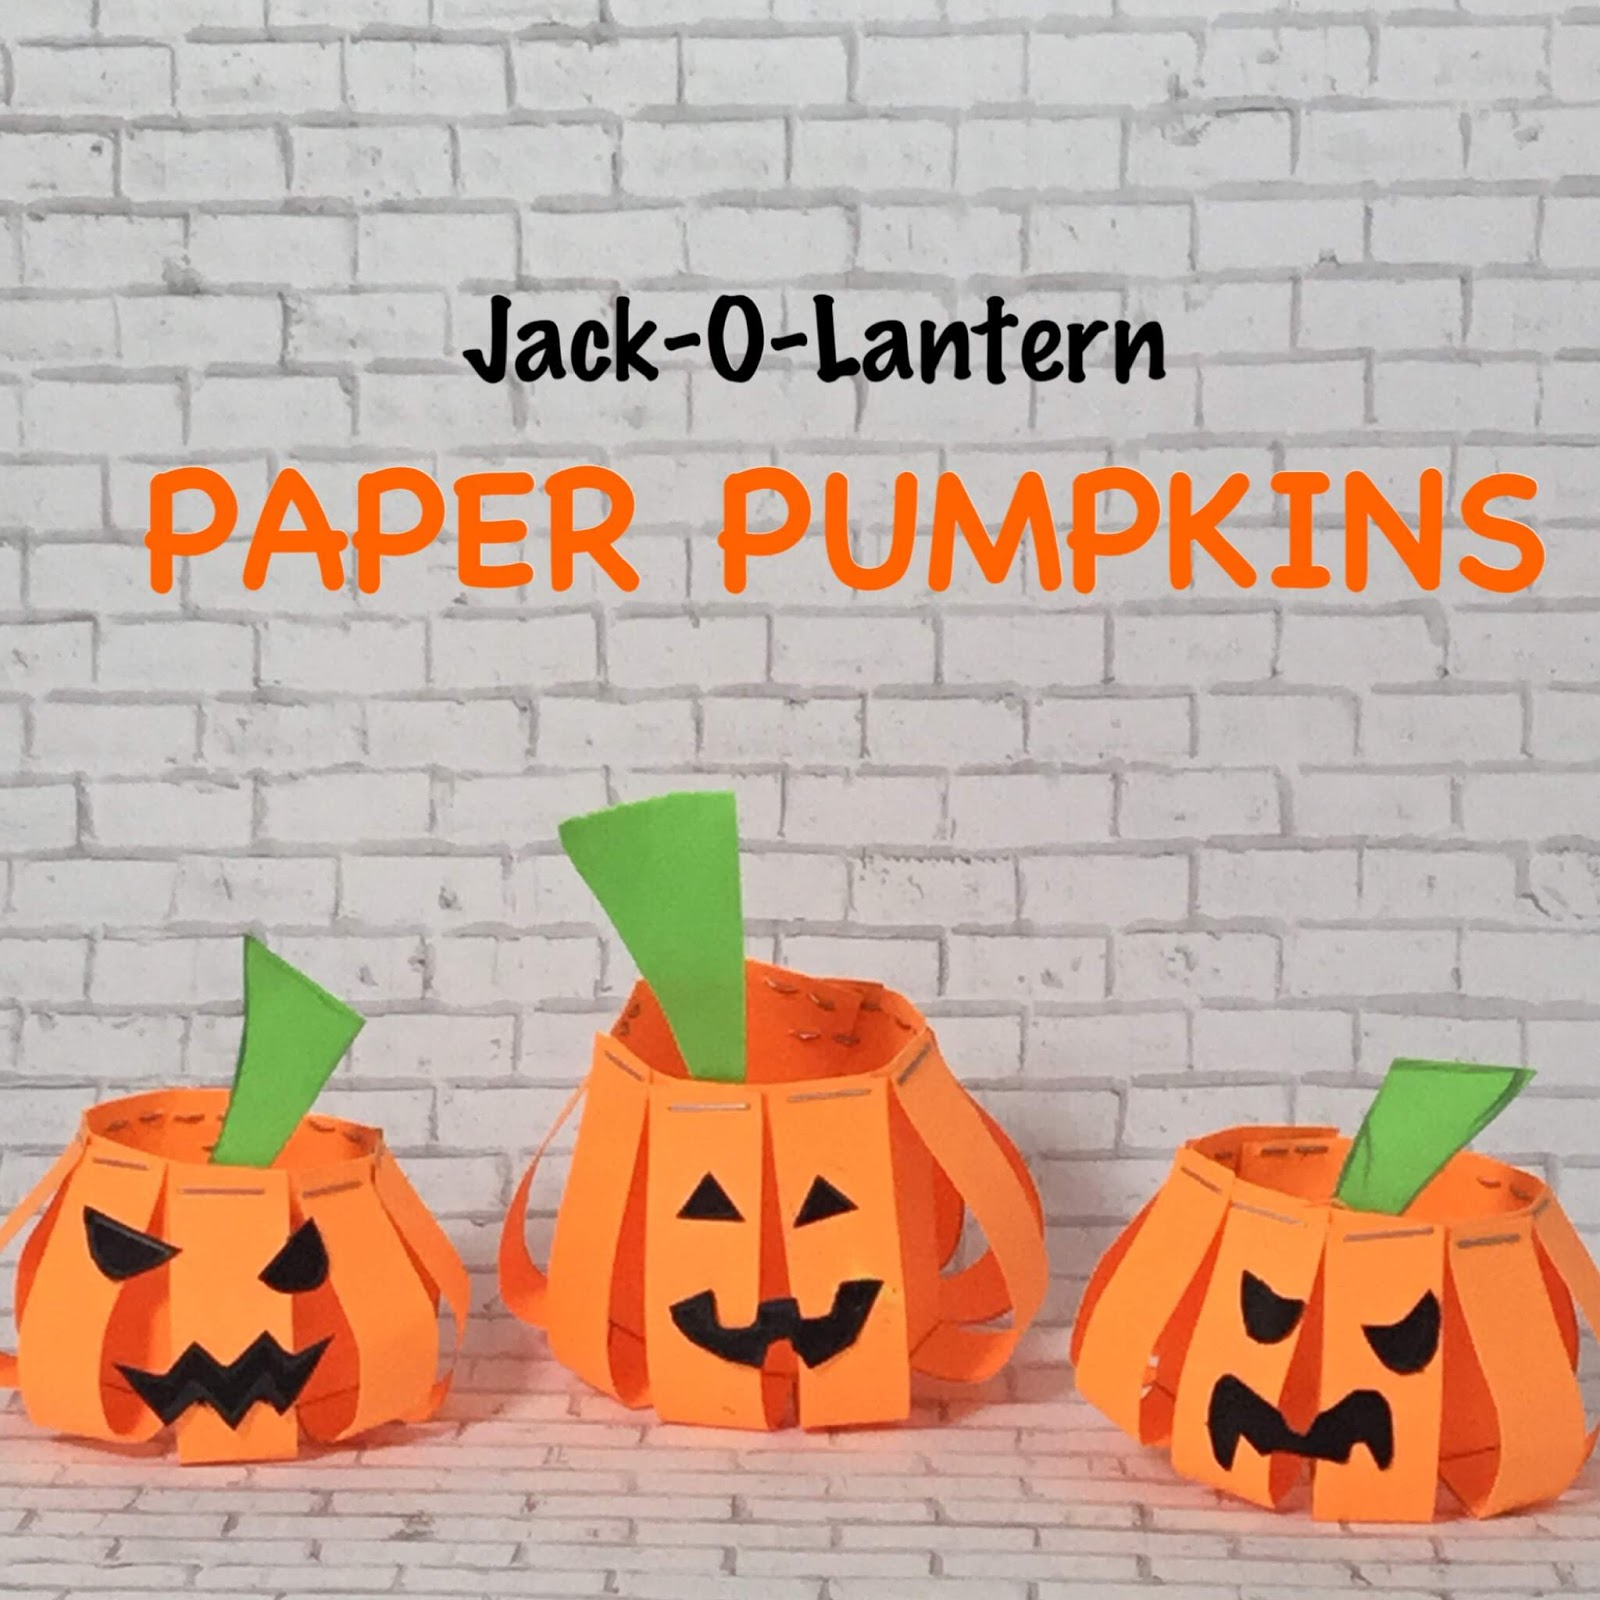 Kids craft, crafts for kids, craft ideas, kids crafts, craft ideas for kids, paper craft, art projects for kids, easy crafts for kids, fun craft for kids, kids arts and crafts, art activities for kids, kids projects, art and crafts ideas, halloween craft, halloween for kids, halloween pumpkin, jack-o-lantern pumpkin, paper pumpkin